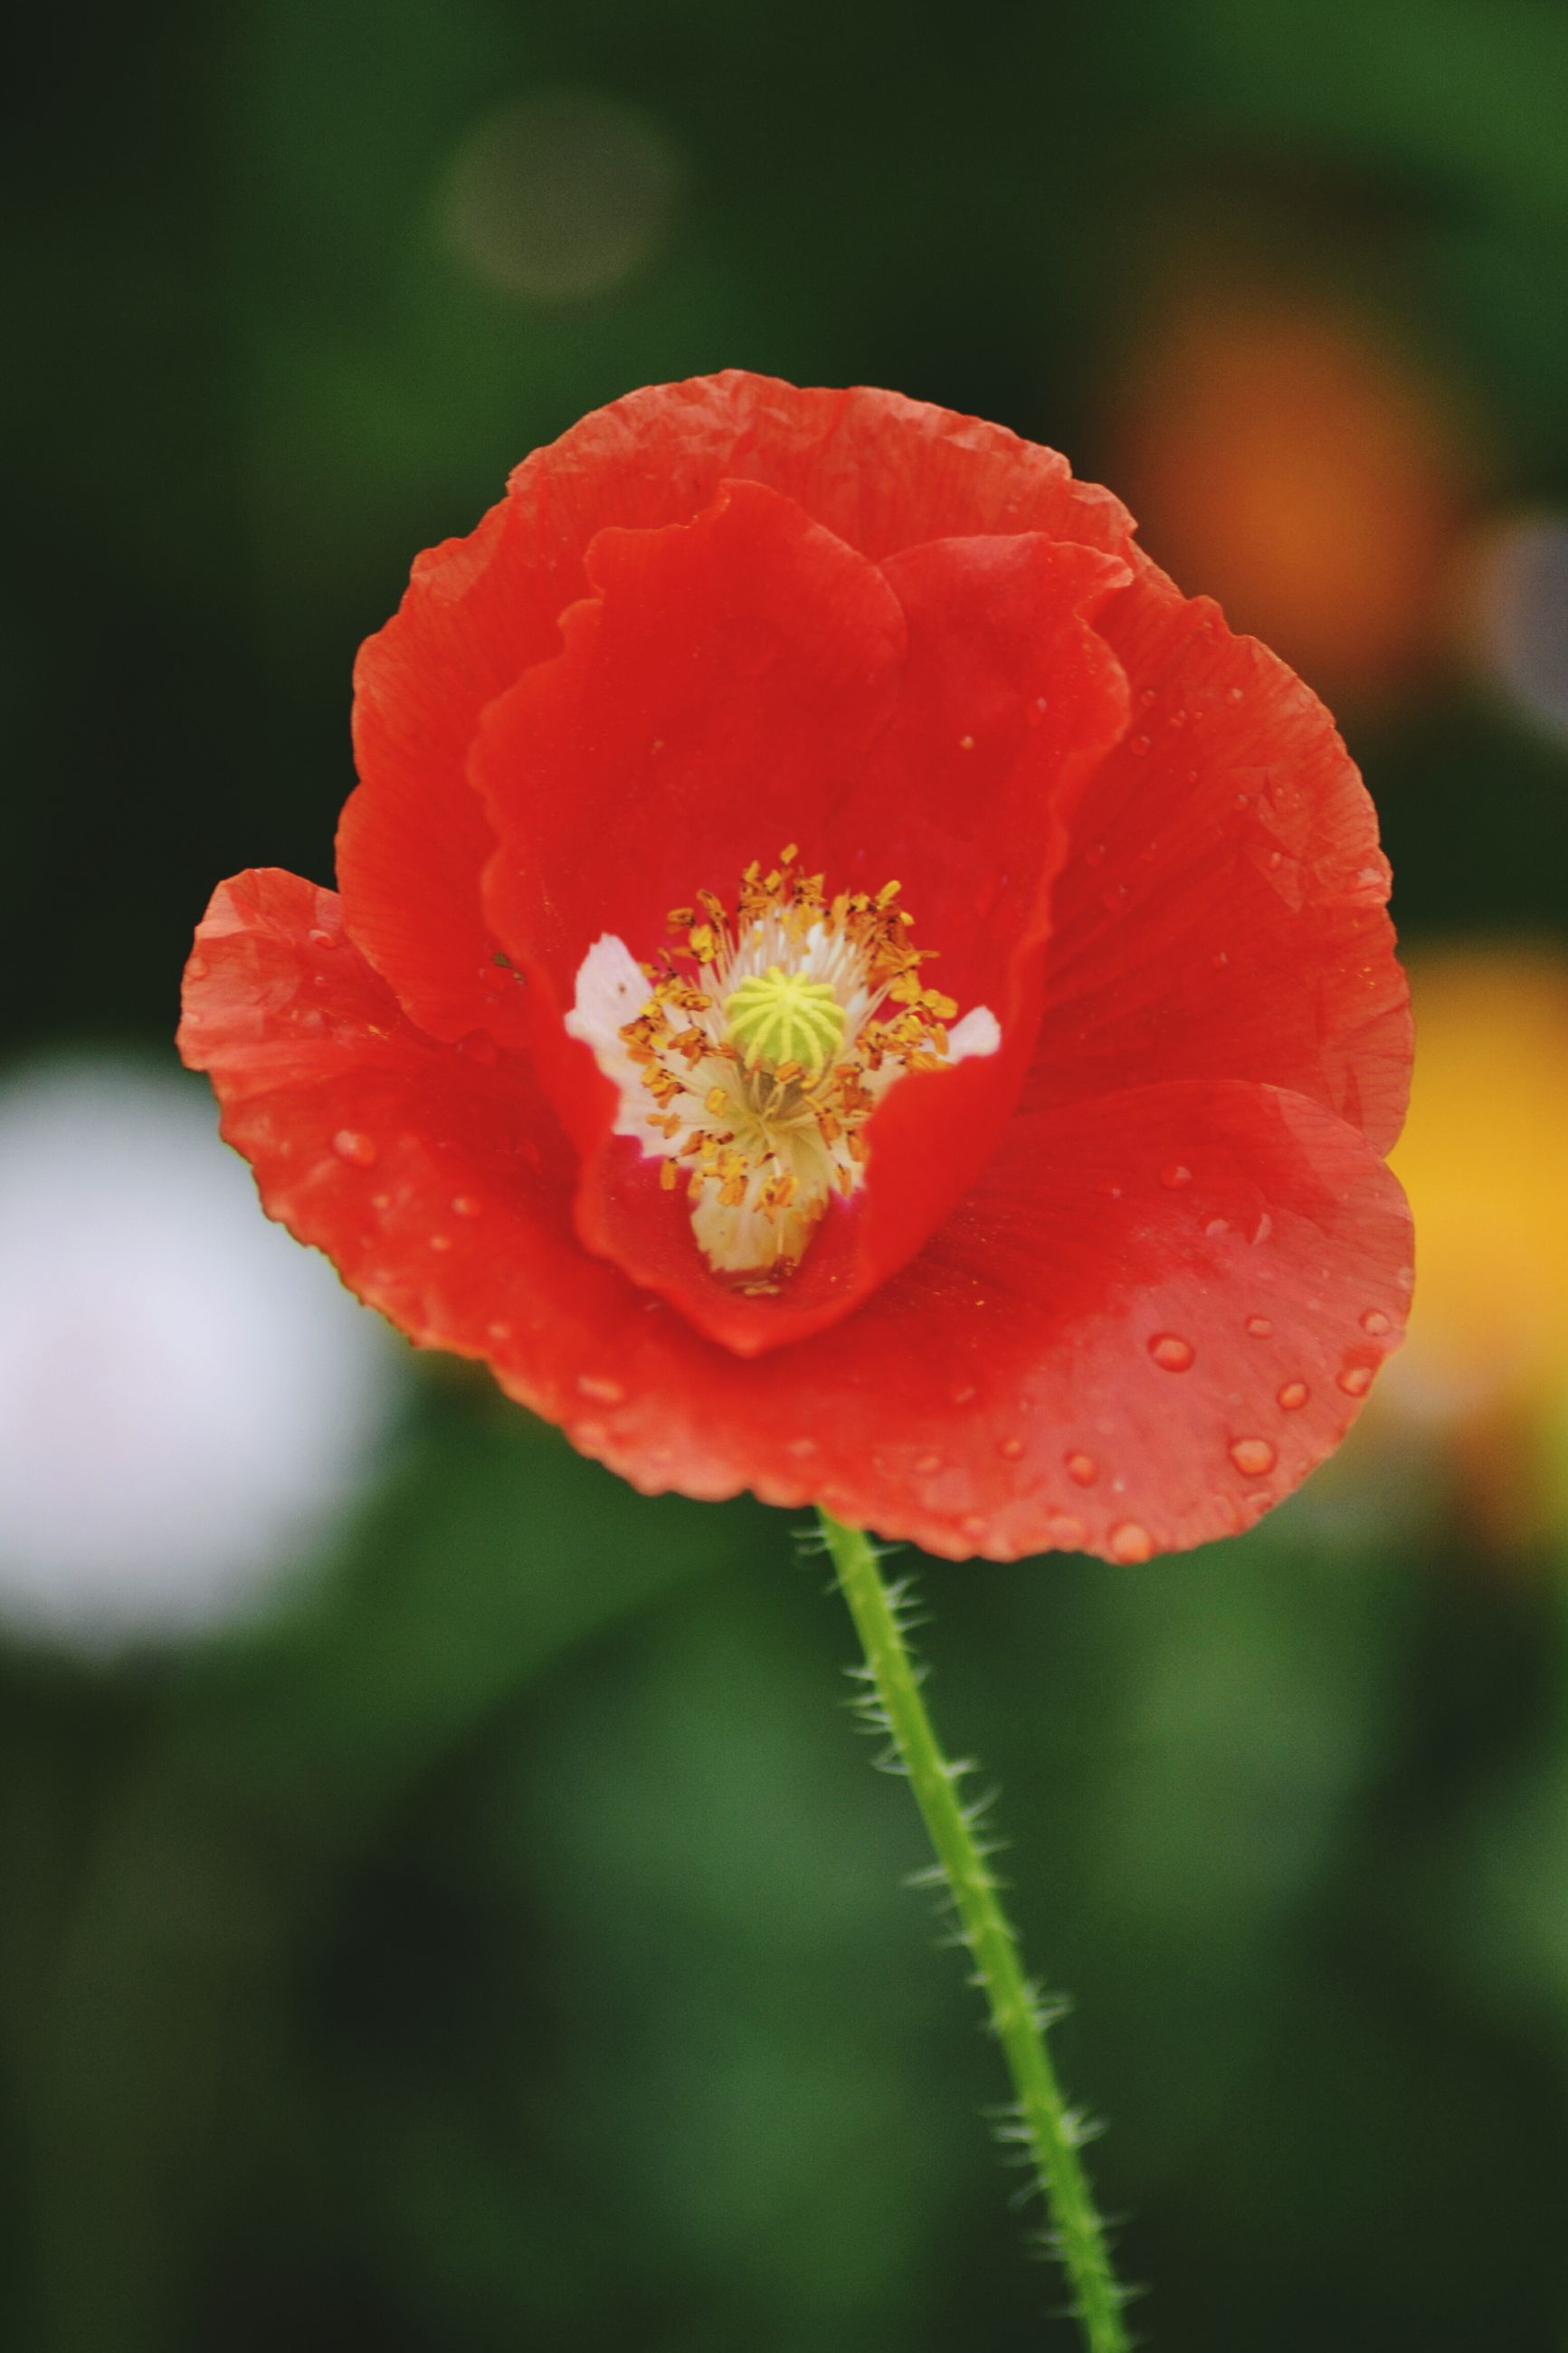 flower, freshness, petal, flower head, fragility, growth, close-up, beauty in nature, focus on foreground, single flower, red, nature, plant, blooming, in bloom, selective focus, stamen, pollen, blossom, bud